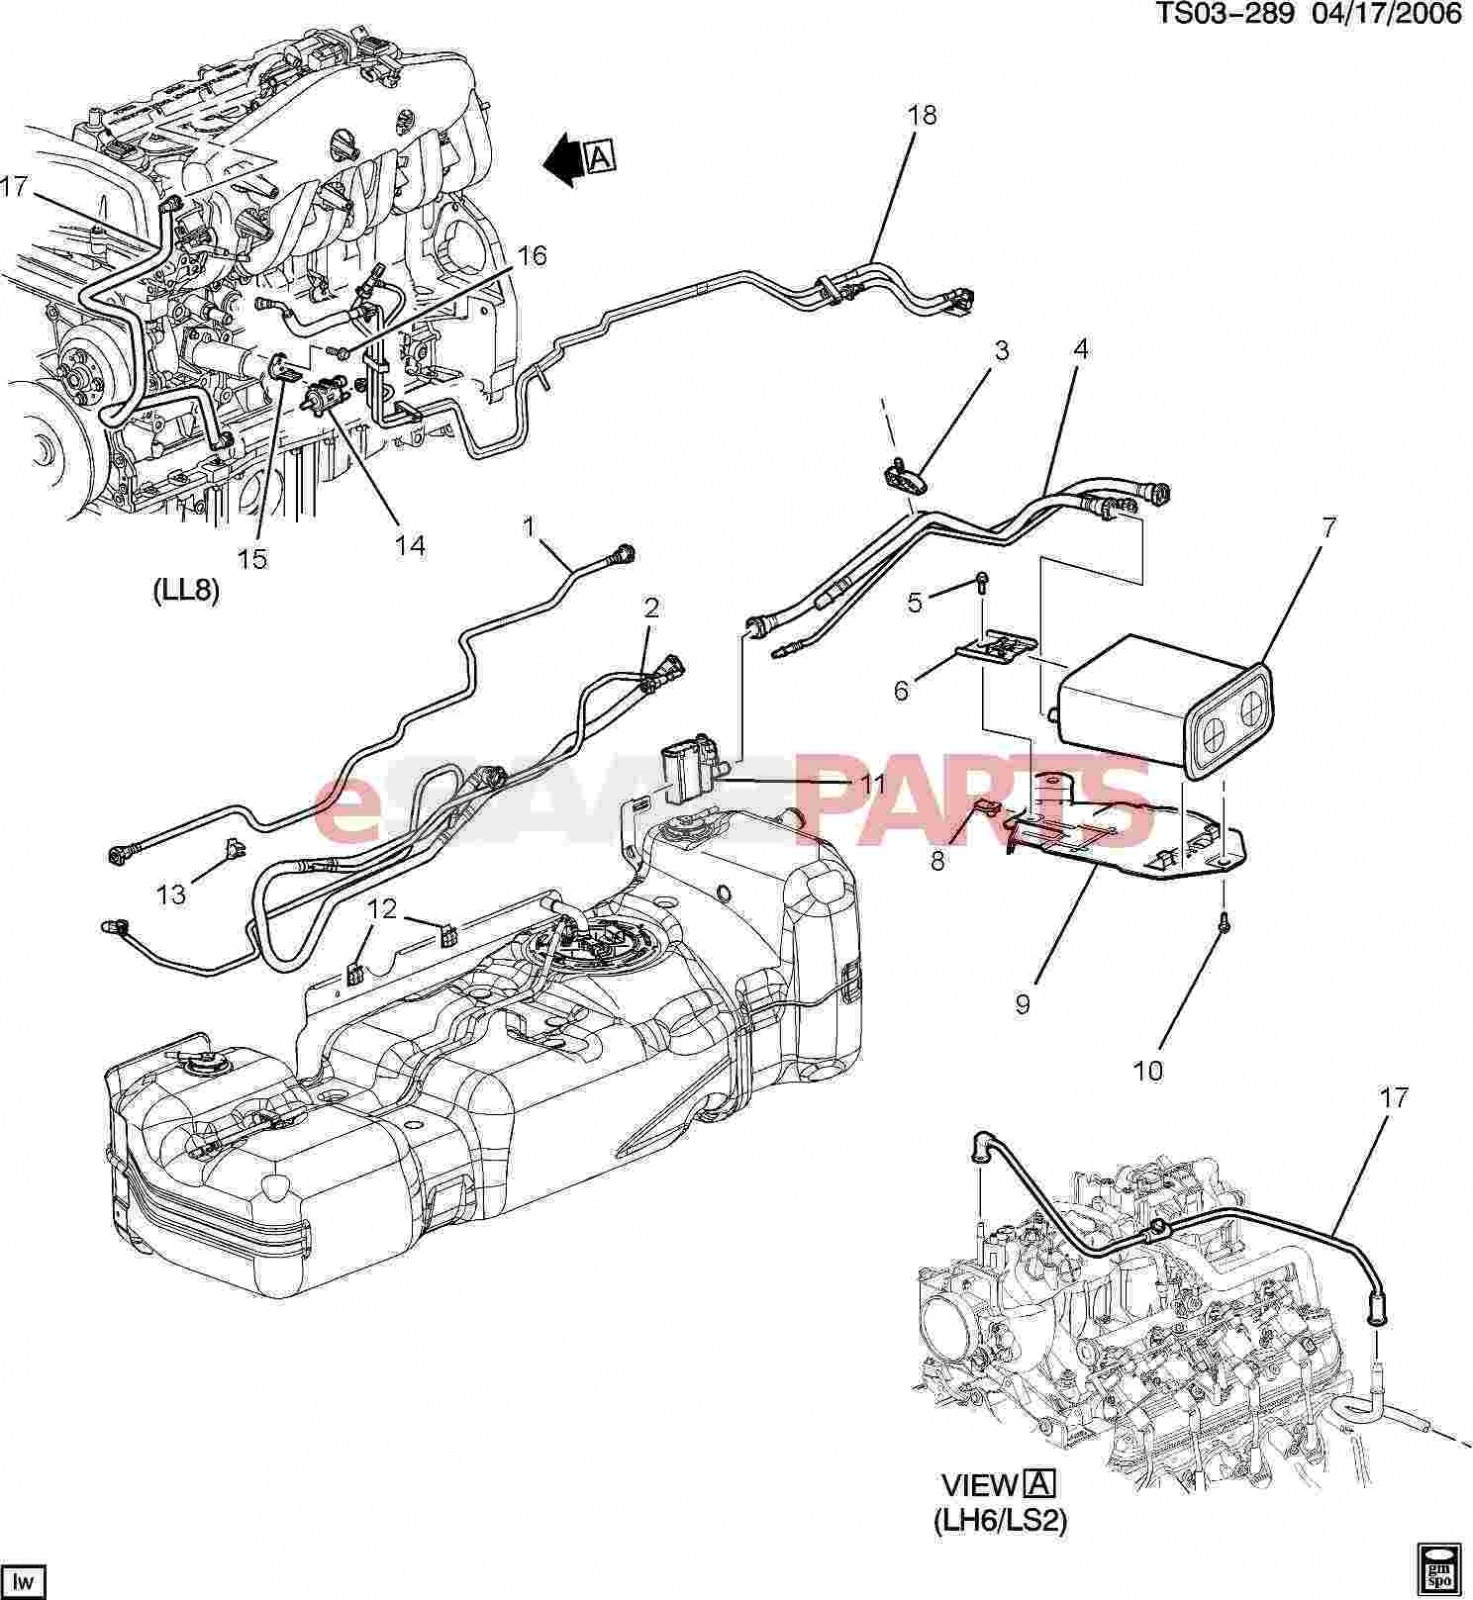 2004 Gmc Yukon Parts Diagram 2004 Gmc Parts Diagram Experts Wiring Diagram • Of 2004 Gmc Yukon Parts Diagram